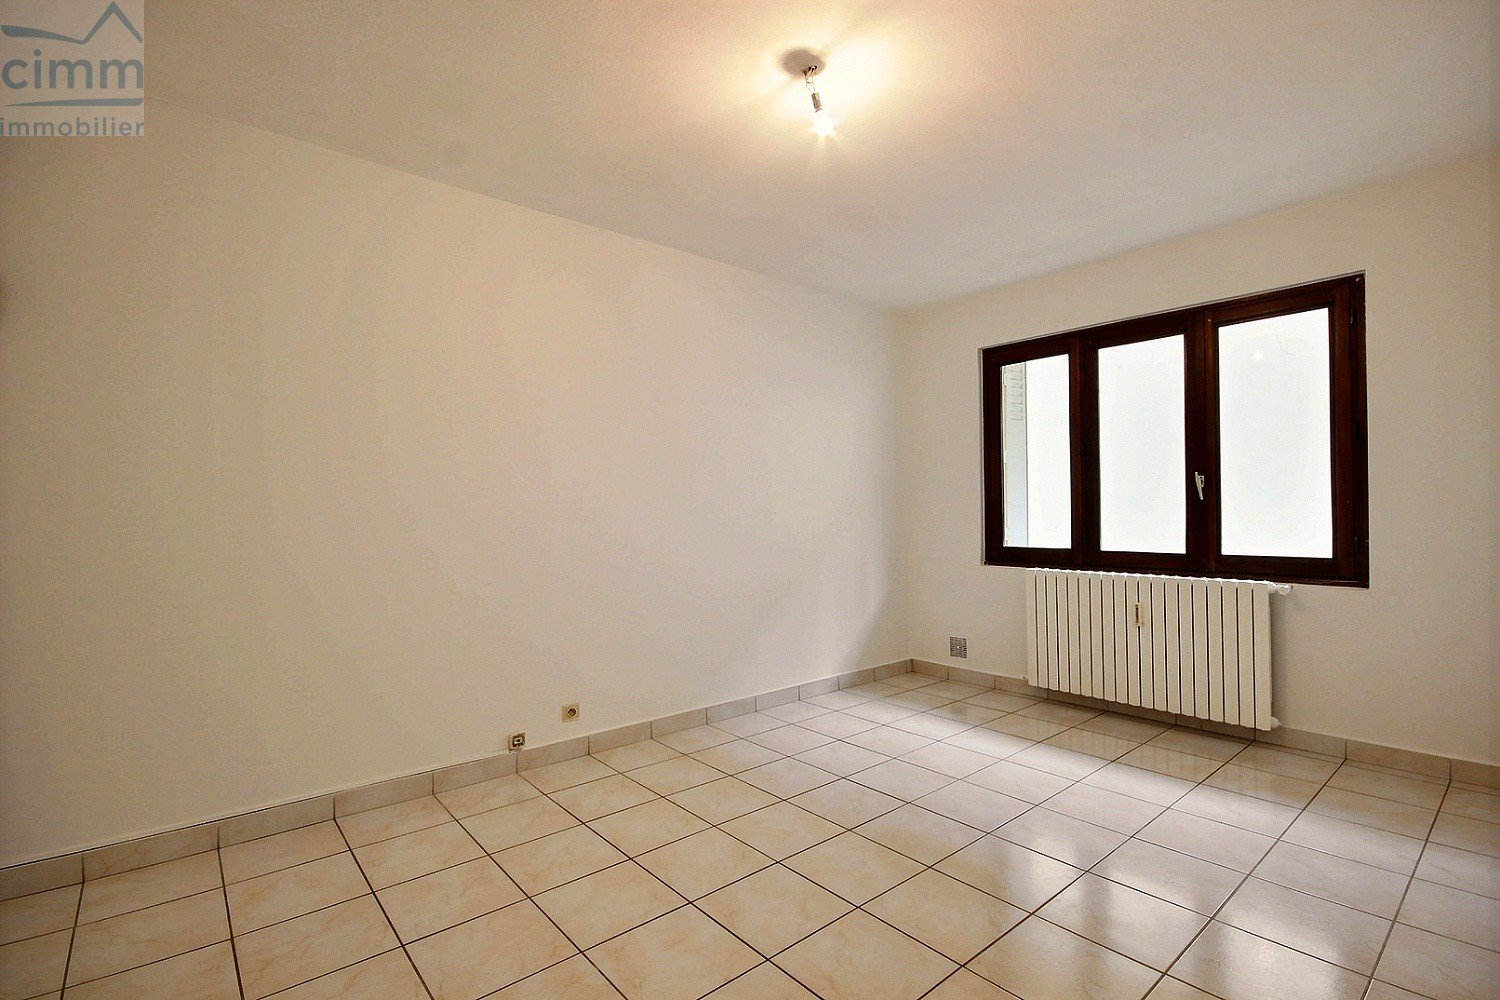 location appartement 2 pièces BOURGNEUF 73390